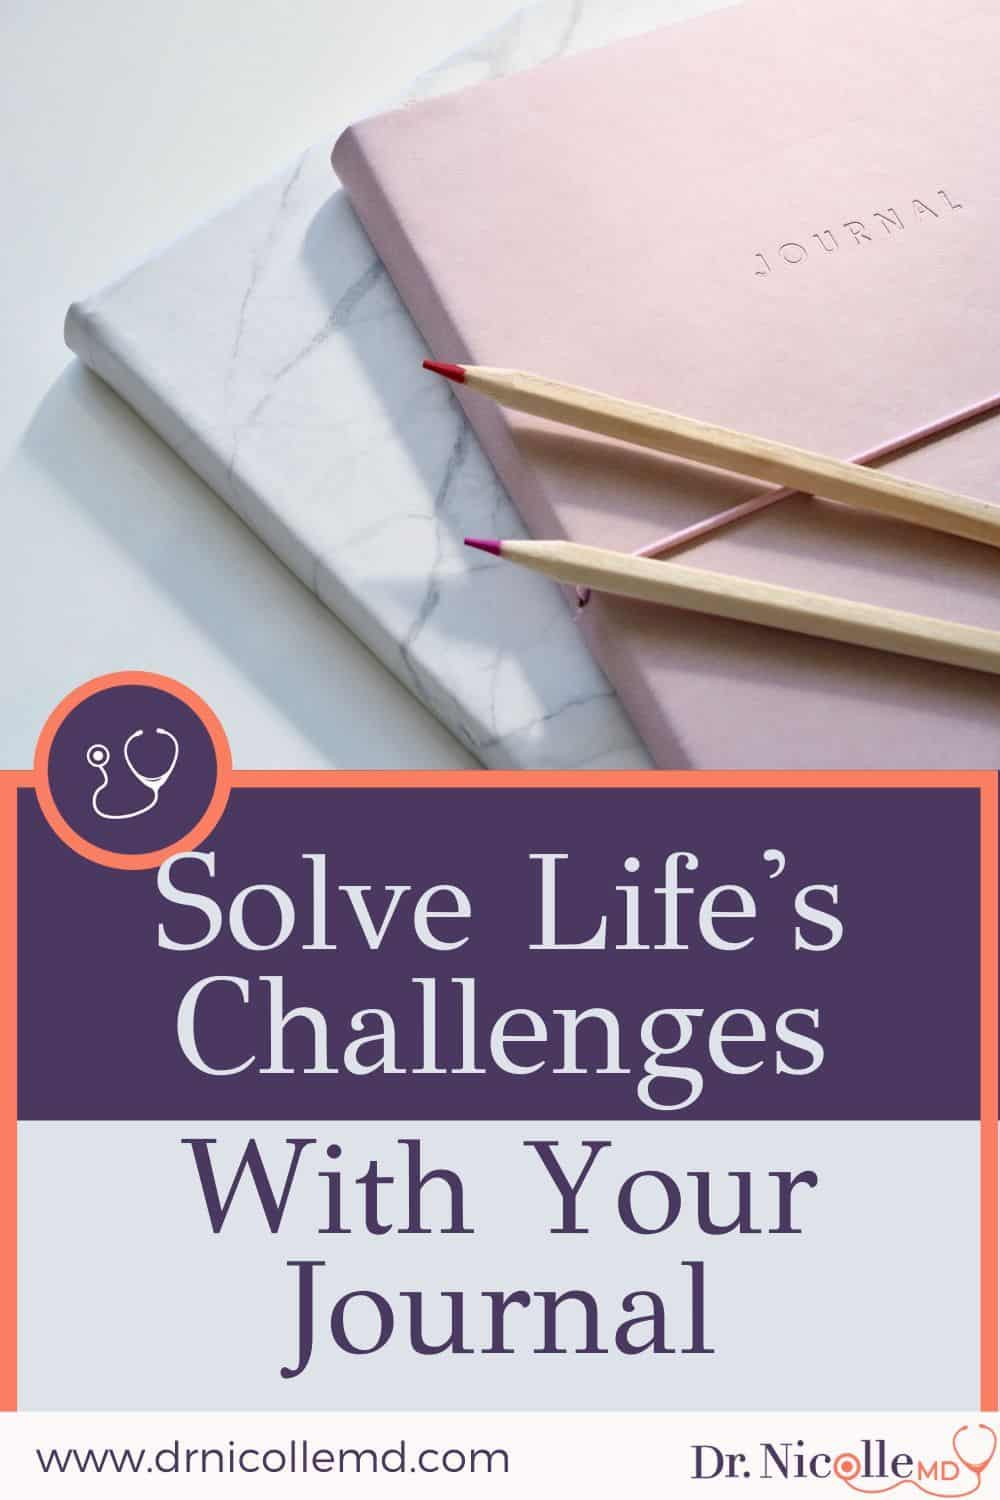 Solve Life's Challenges With Your Journal